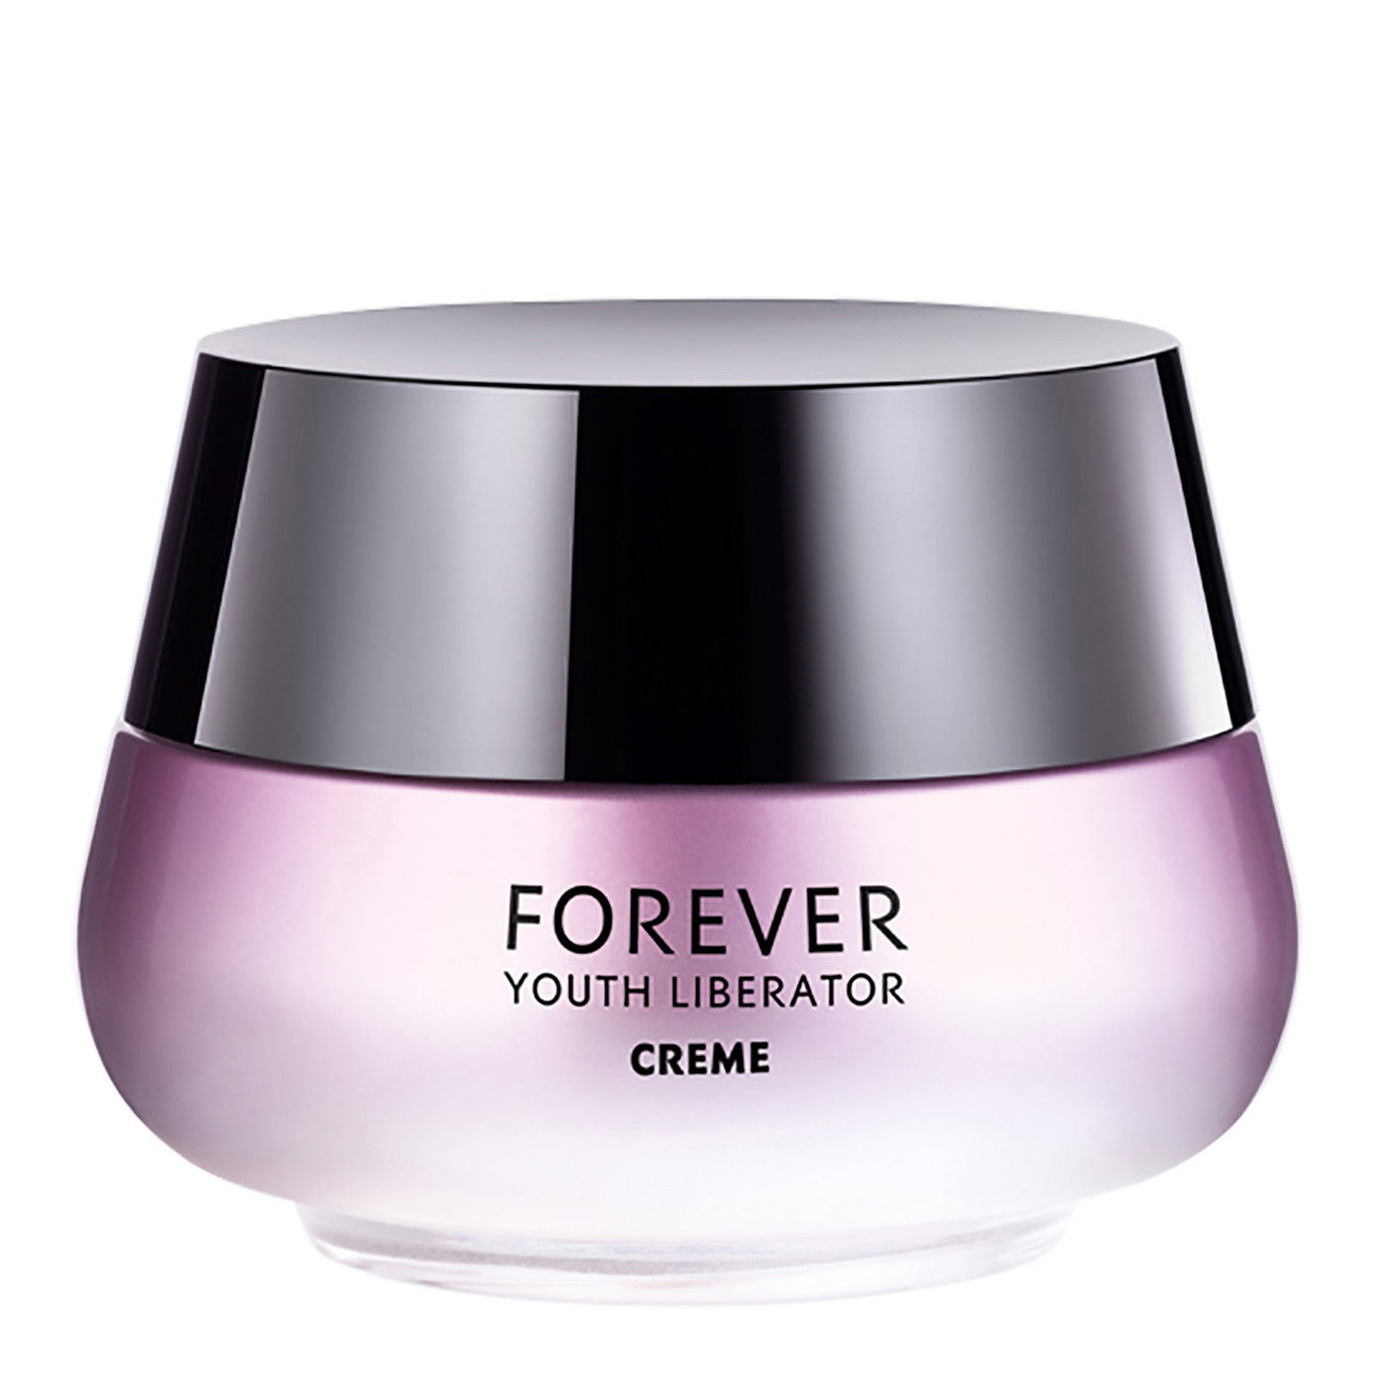 FOREVER YOUTH LIBERATOR. YVESSAINTLAURENT Crema piel normal 50ml